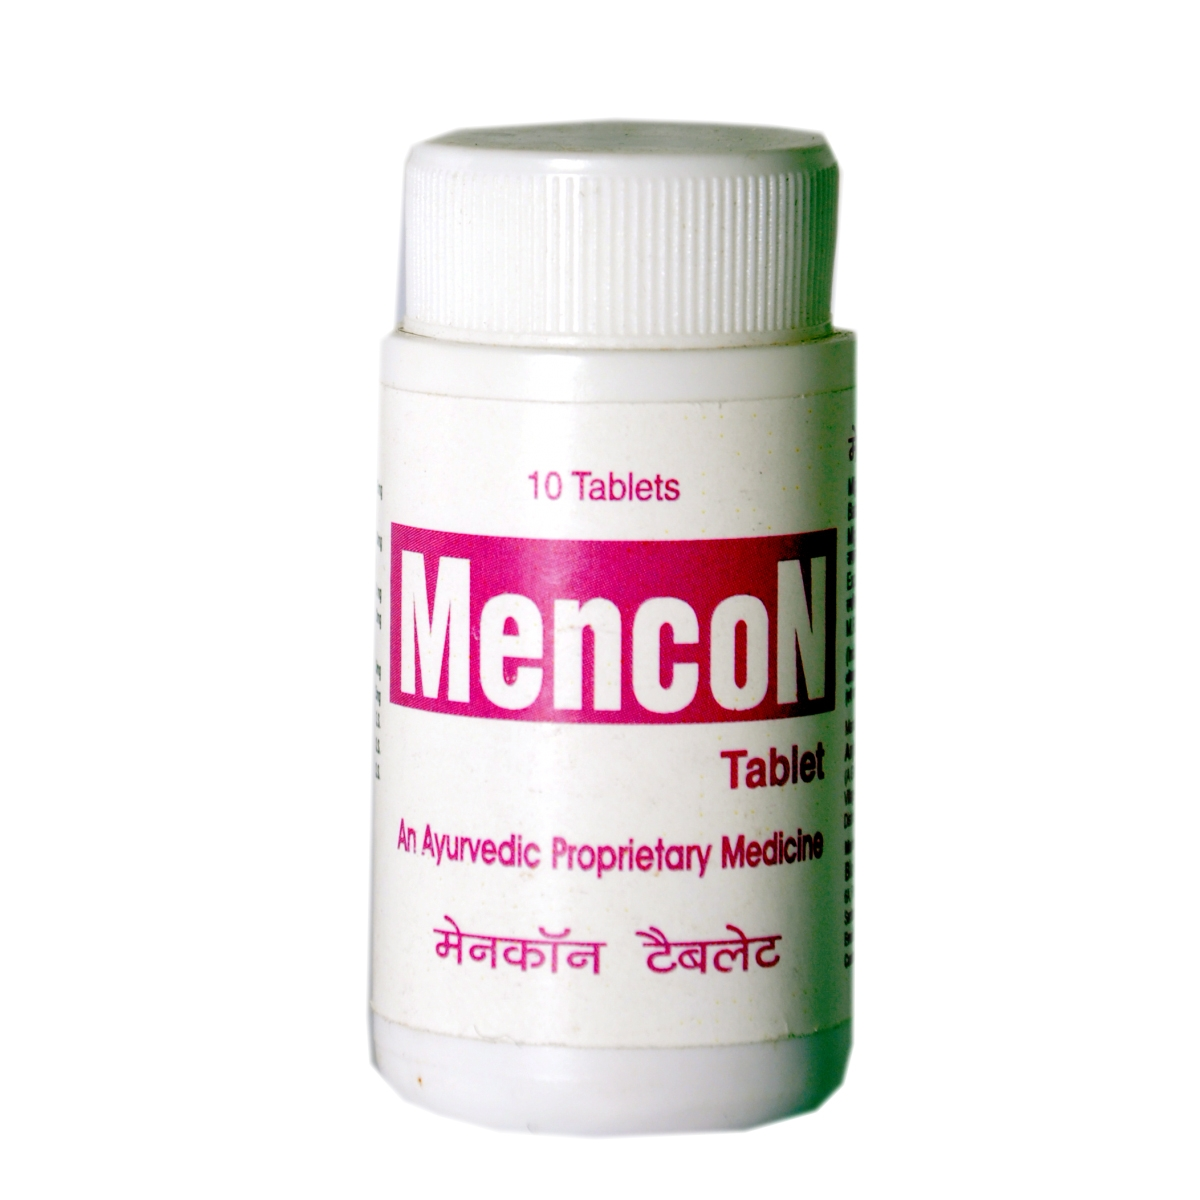 Mencon Tablet In Gujarat